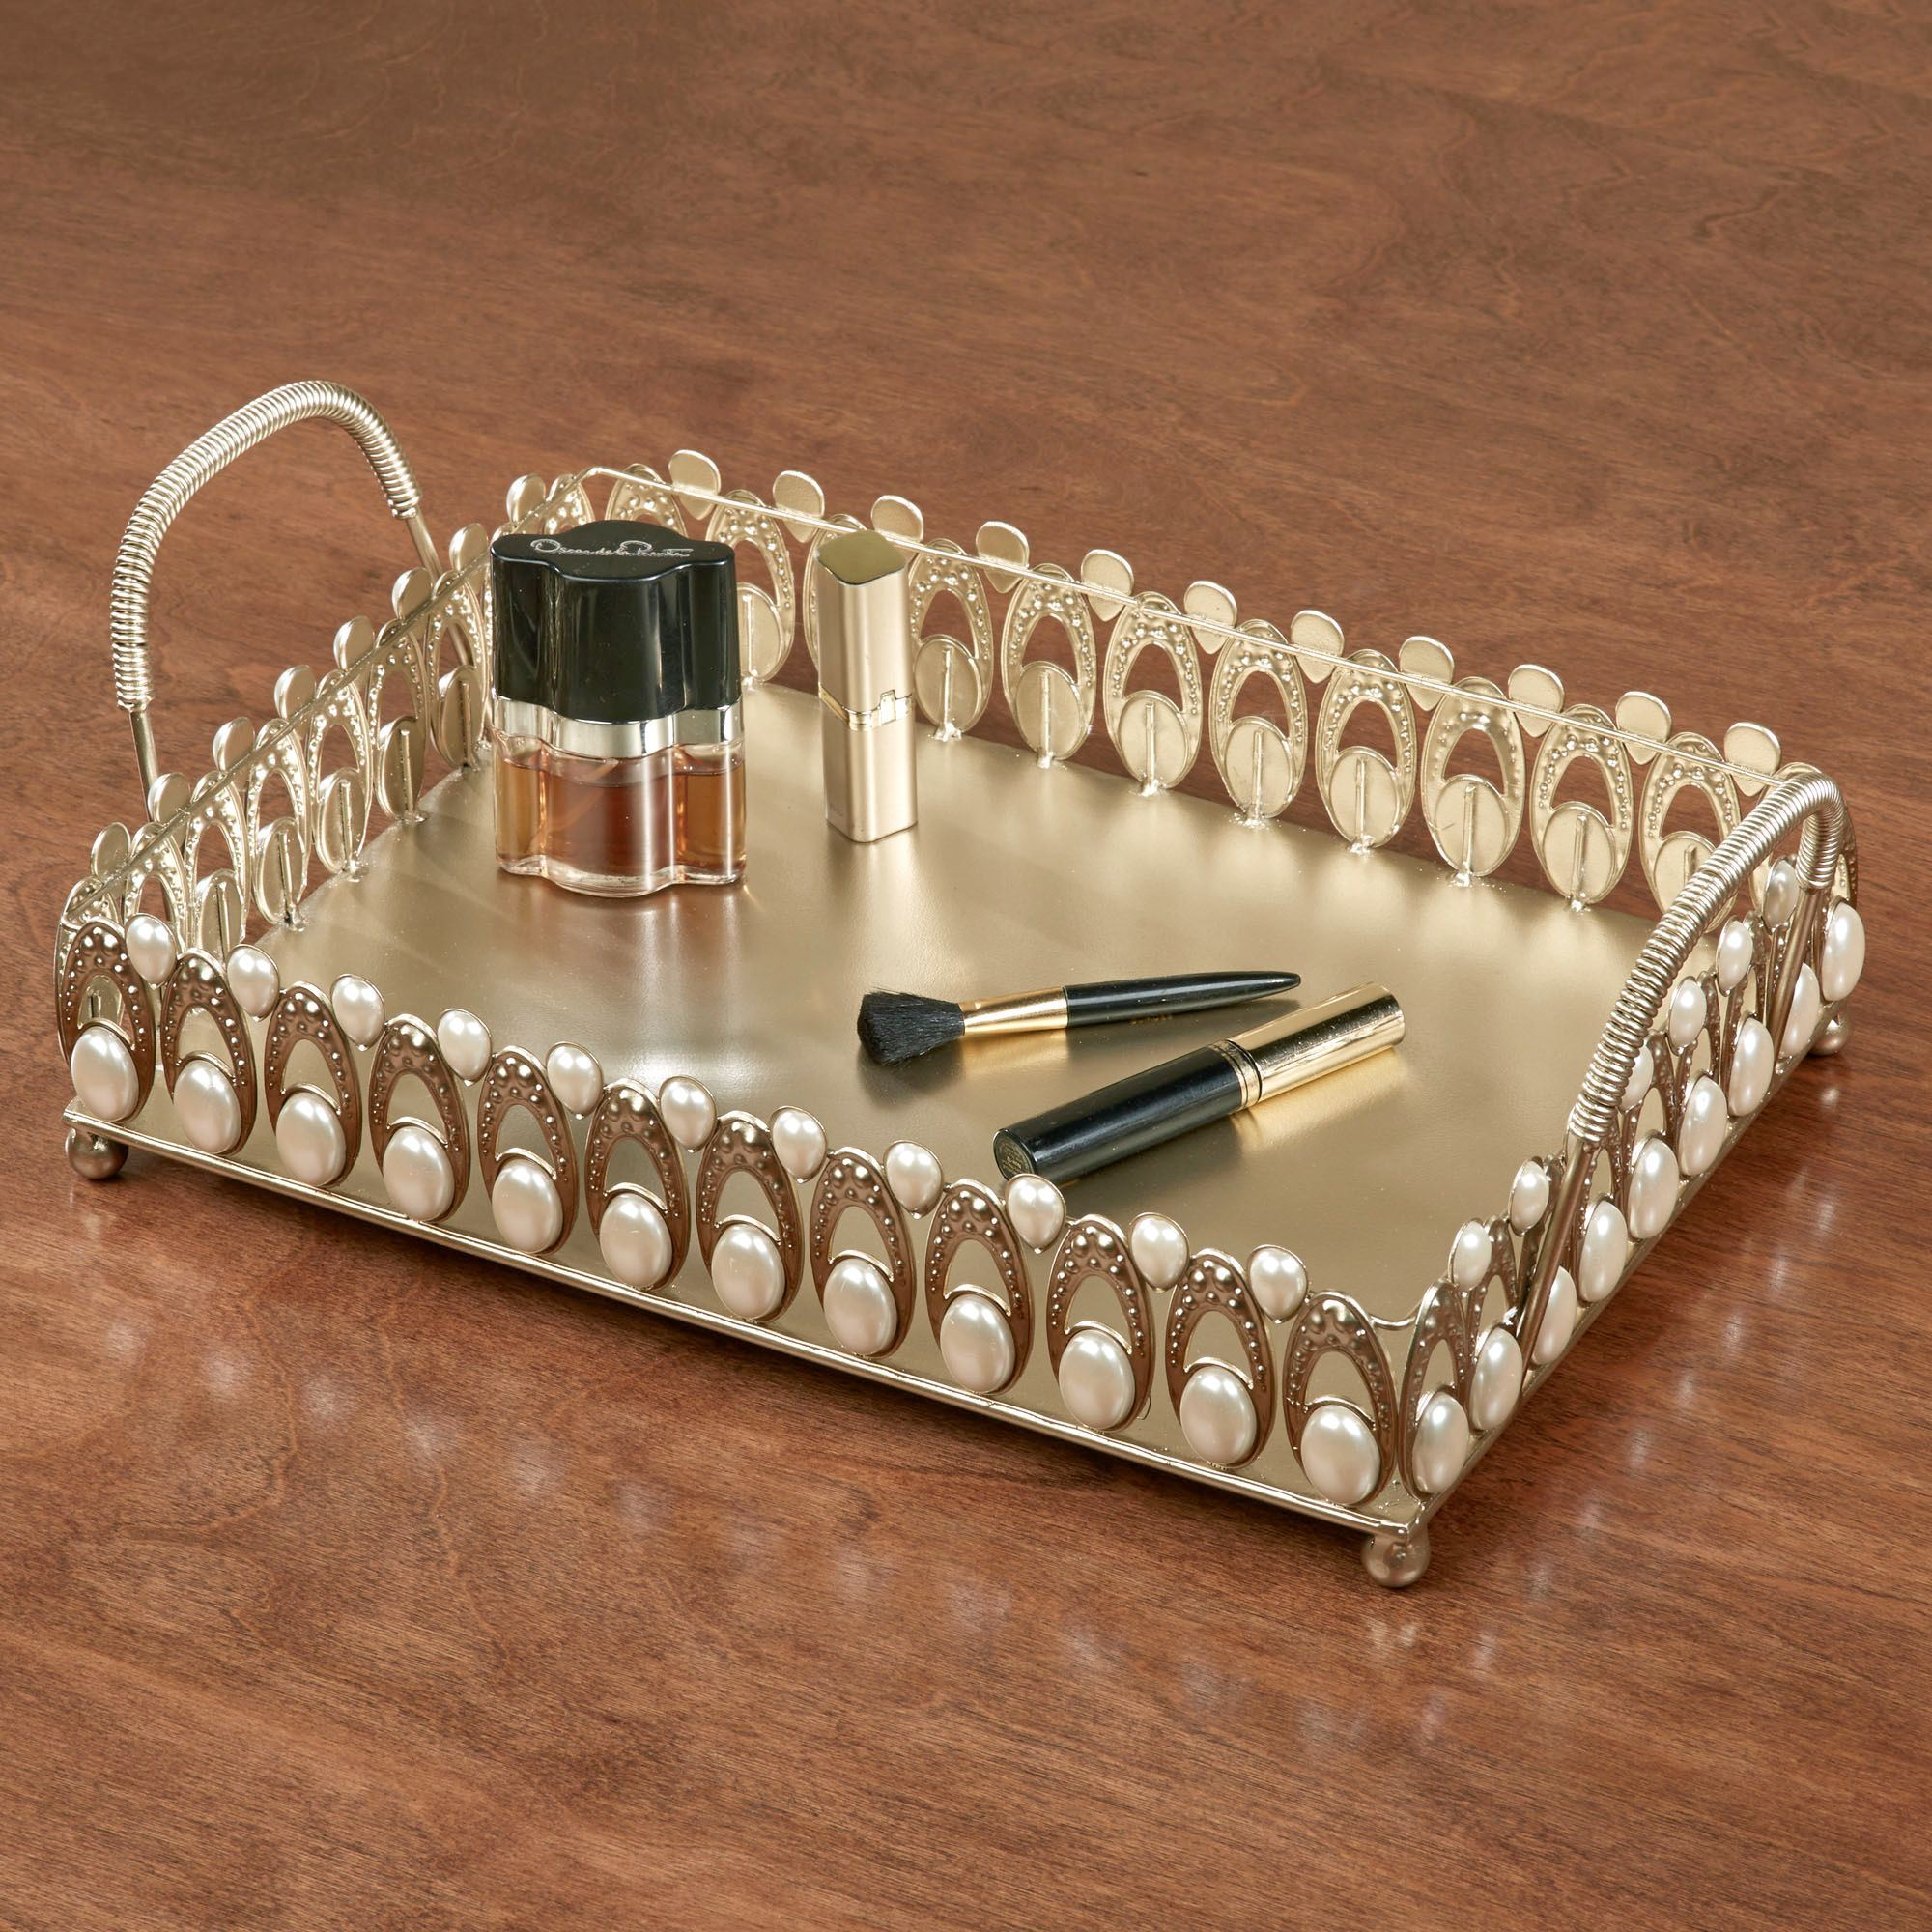 vanity trays for bathroom. Julietta Vanity Tray Champagne Gold. Click To Expand Trays For Bathroom W